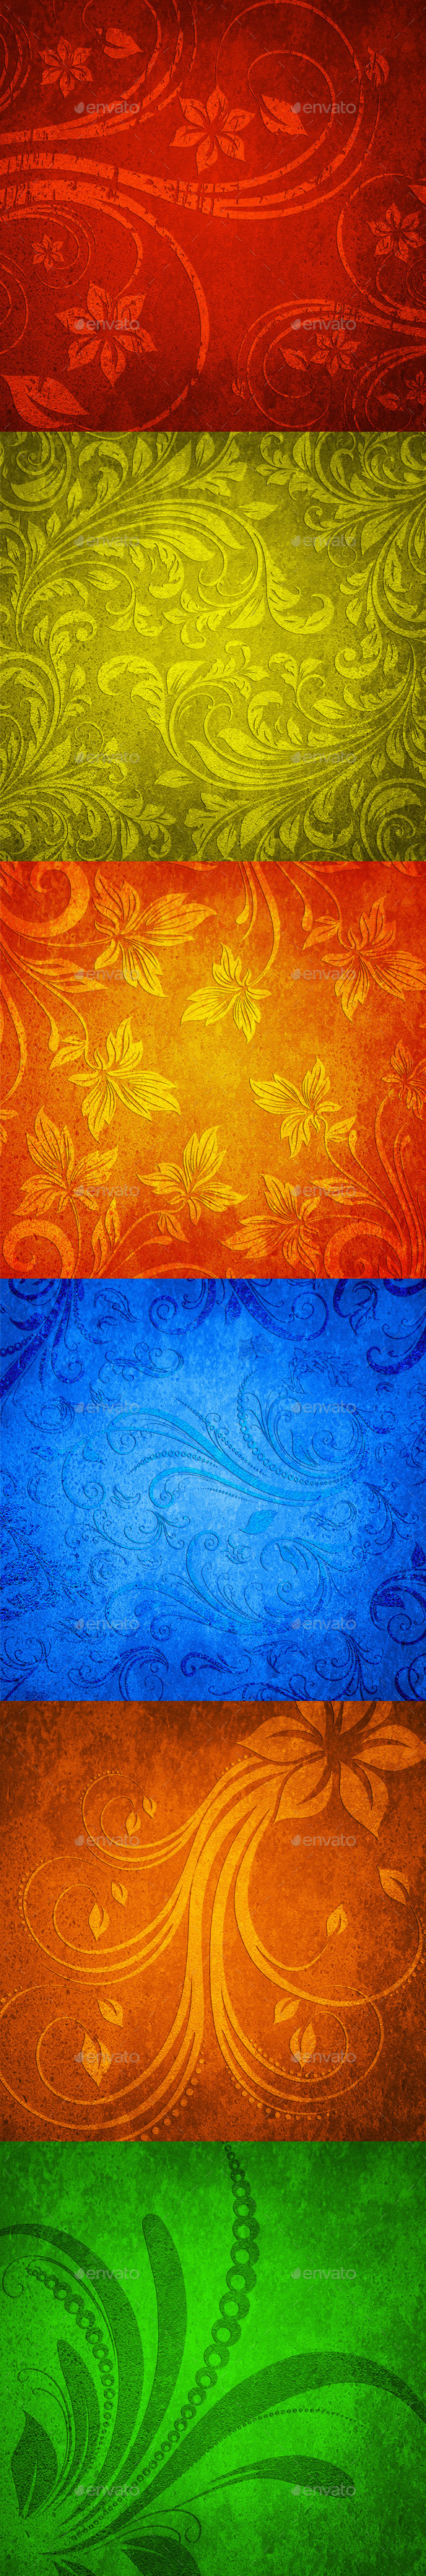 Light Flowers Backgrounds - Backgrounds Graphics